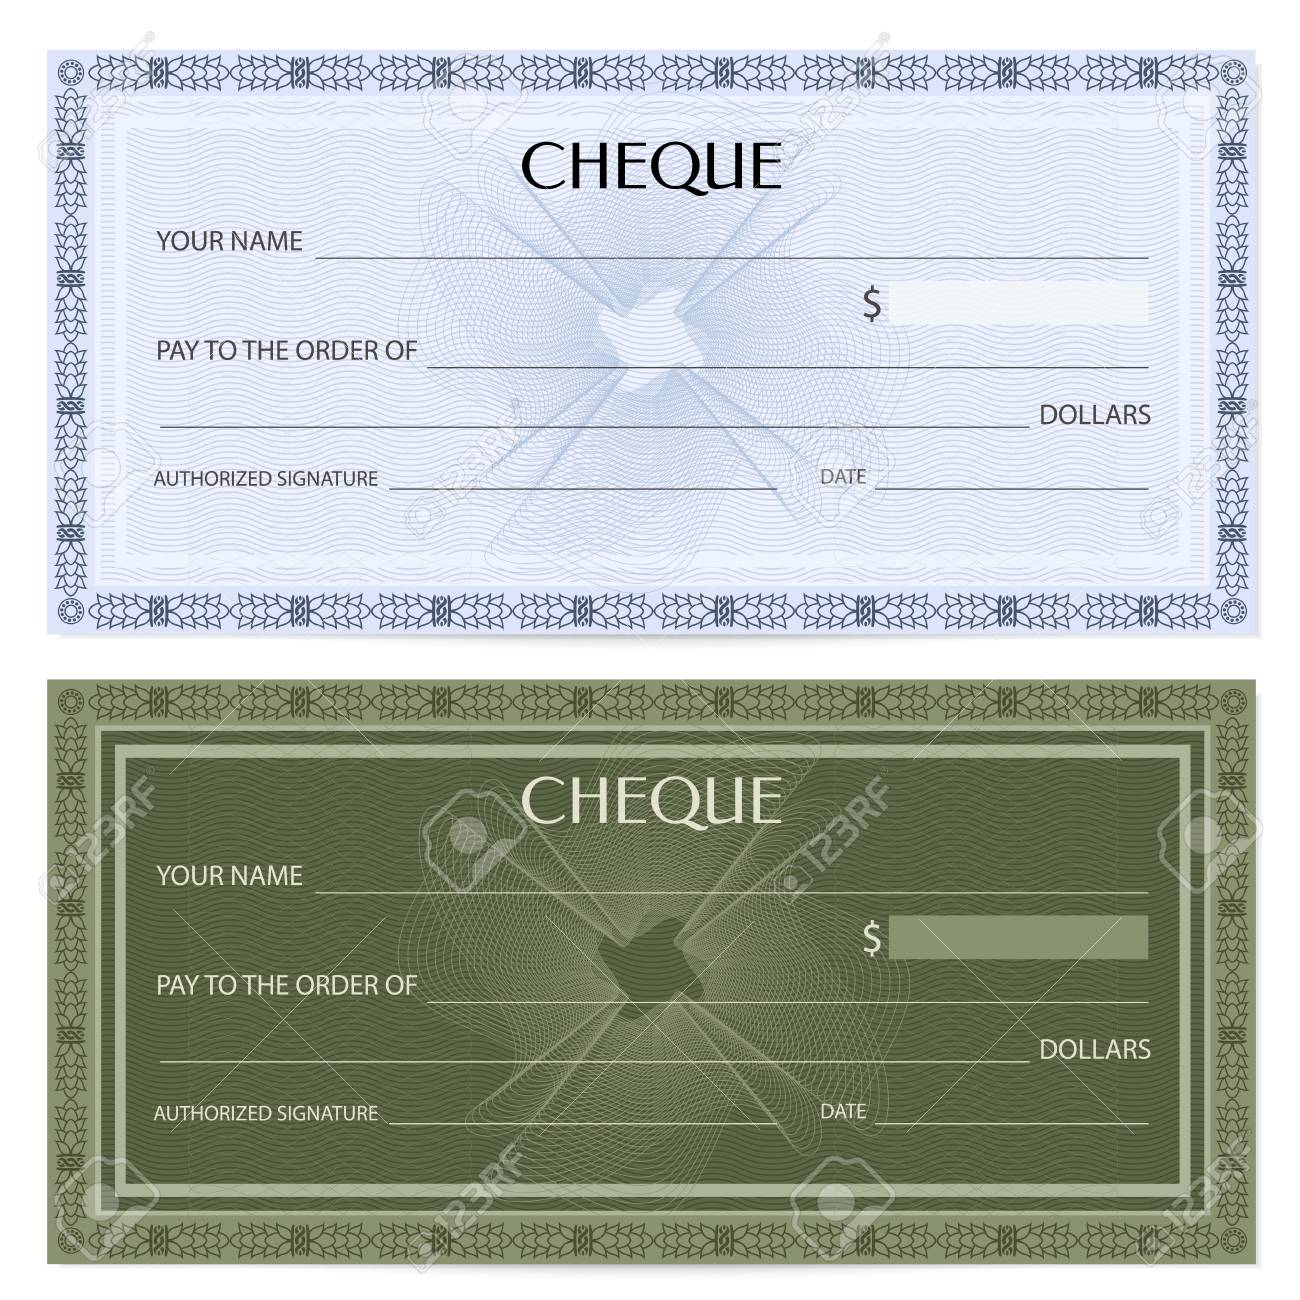 Check (cheque), Chequebook Template. Guilloche Pattern With ...